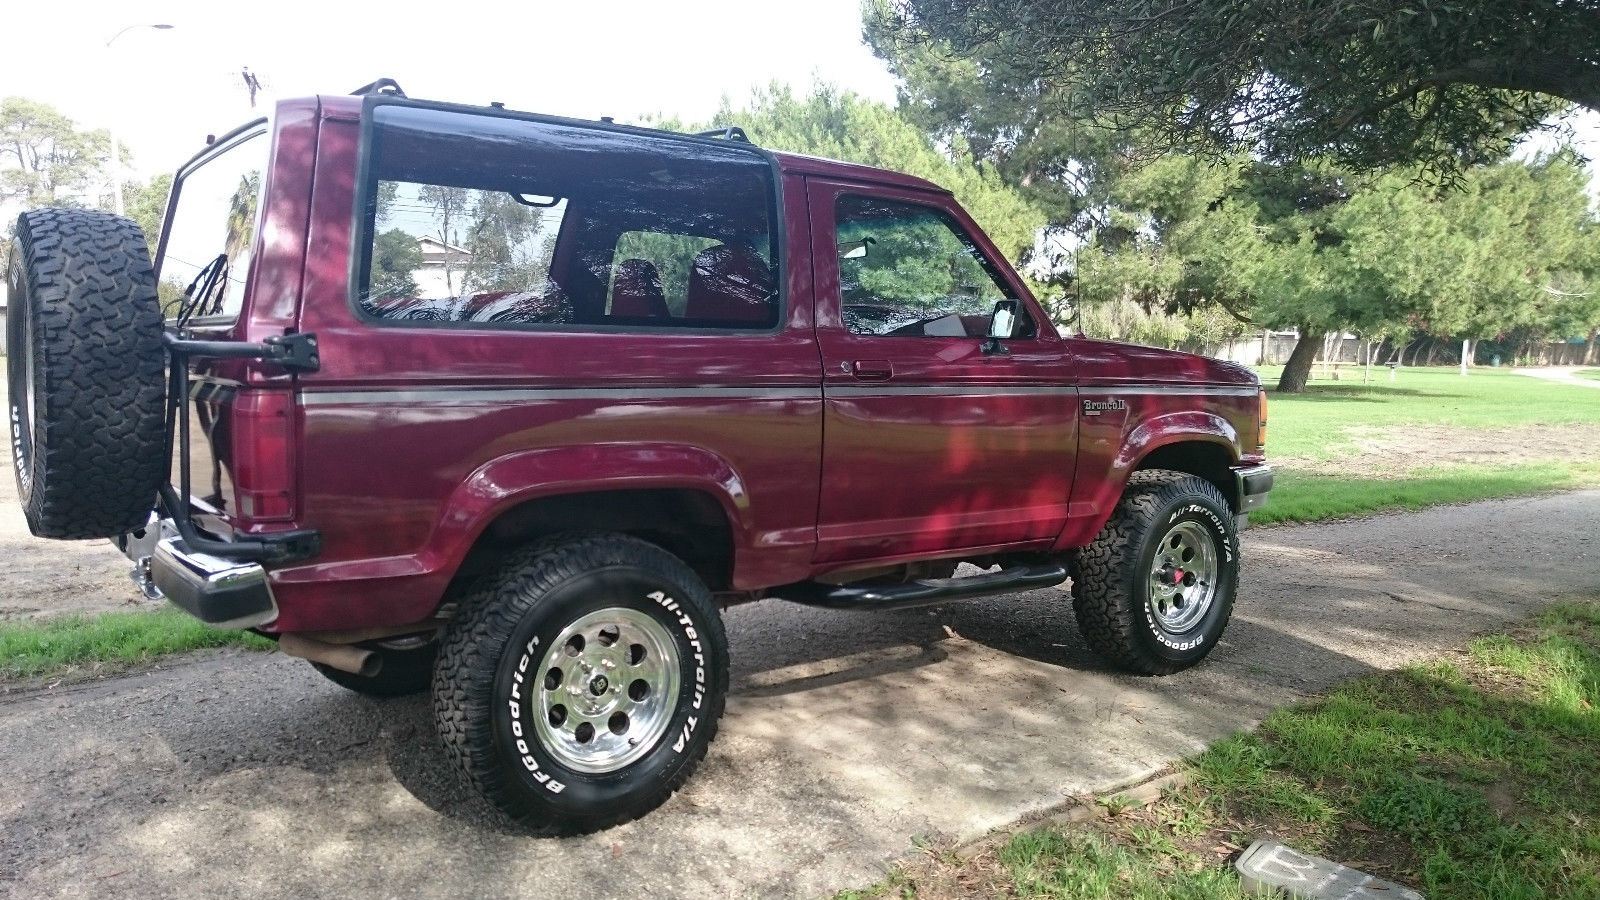 1989 ford bronco ii xl rust free classic rare 5 speed 4x4 off road machine. Black Bedroom Furniture Sets. Home Design Ideas